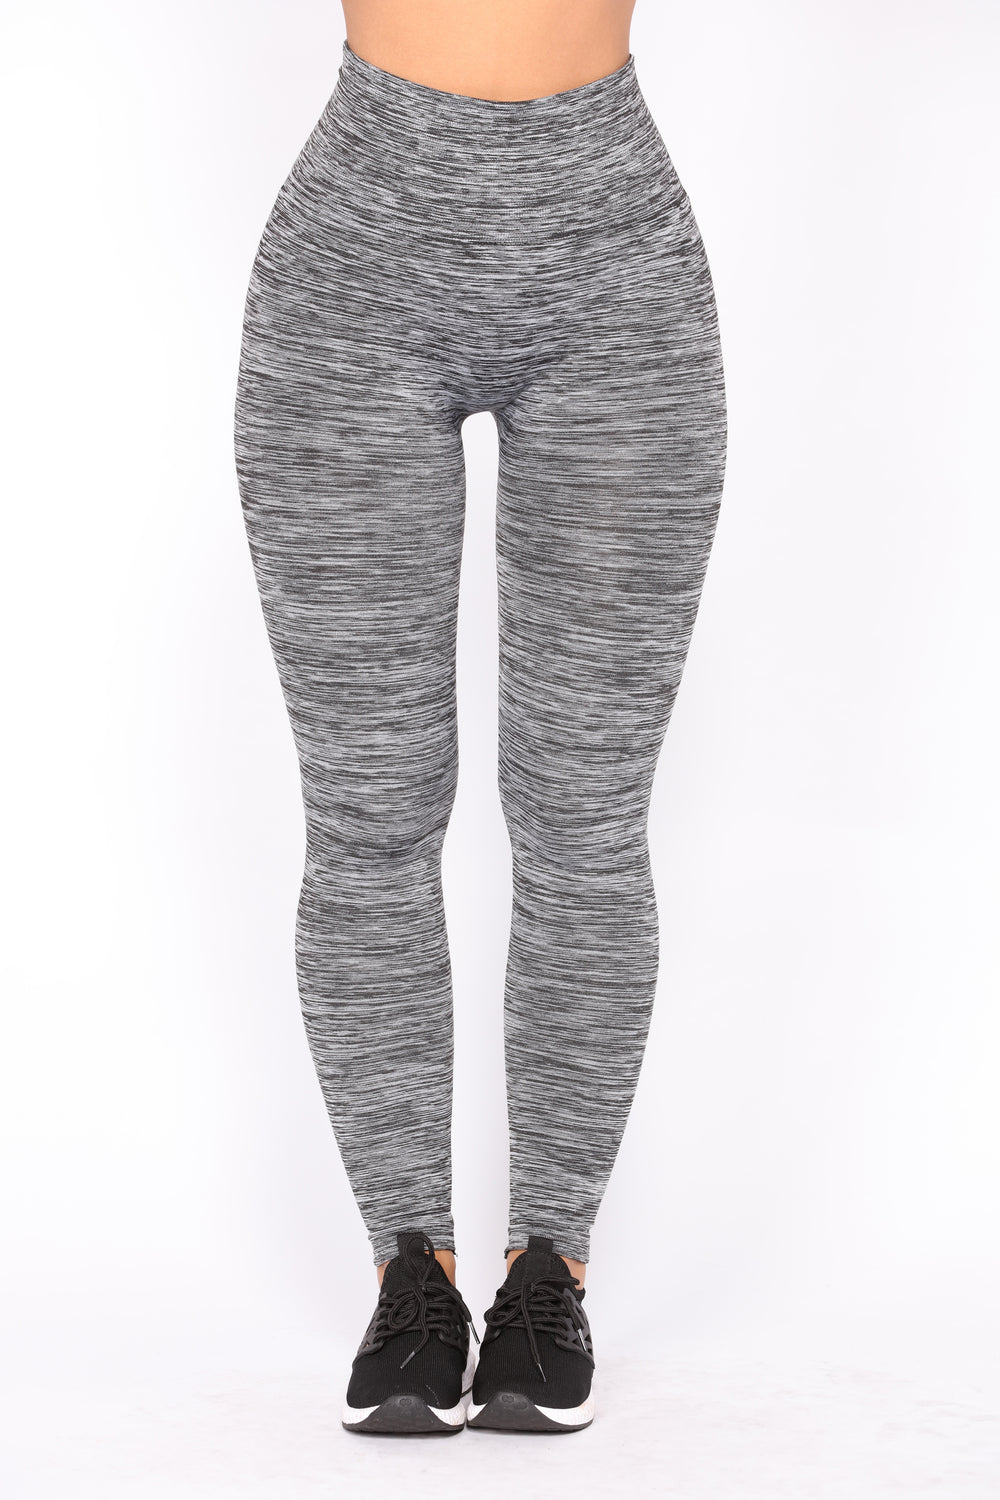 Carli Fleece Lined Leggings - White/Black